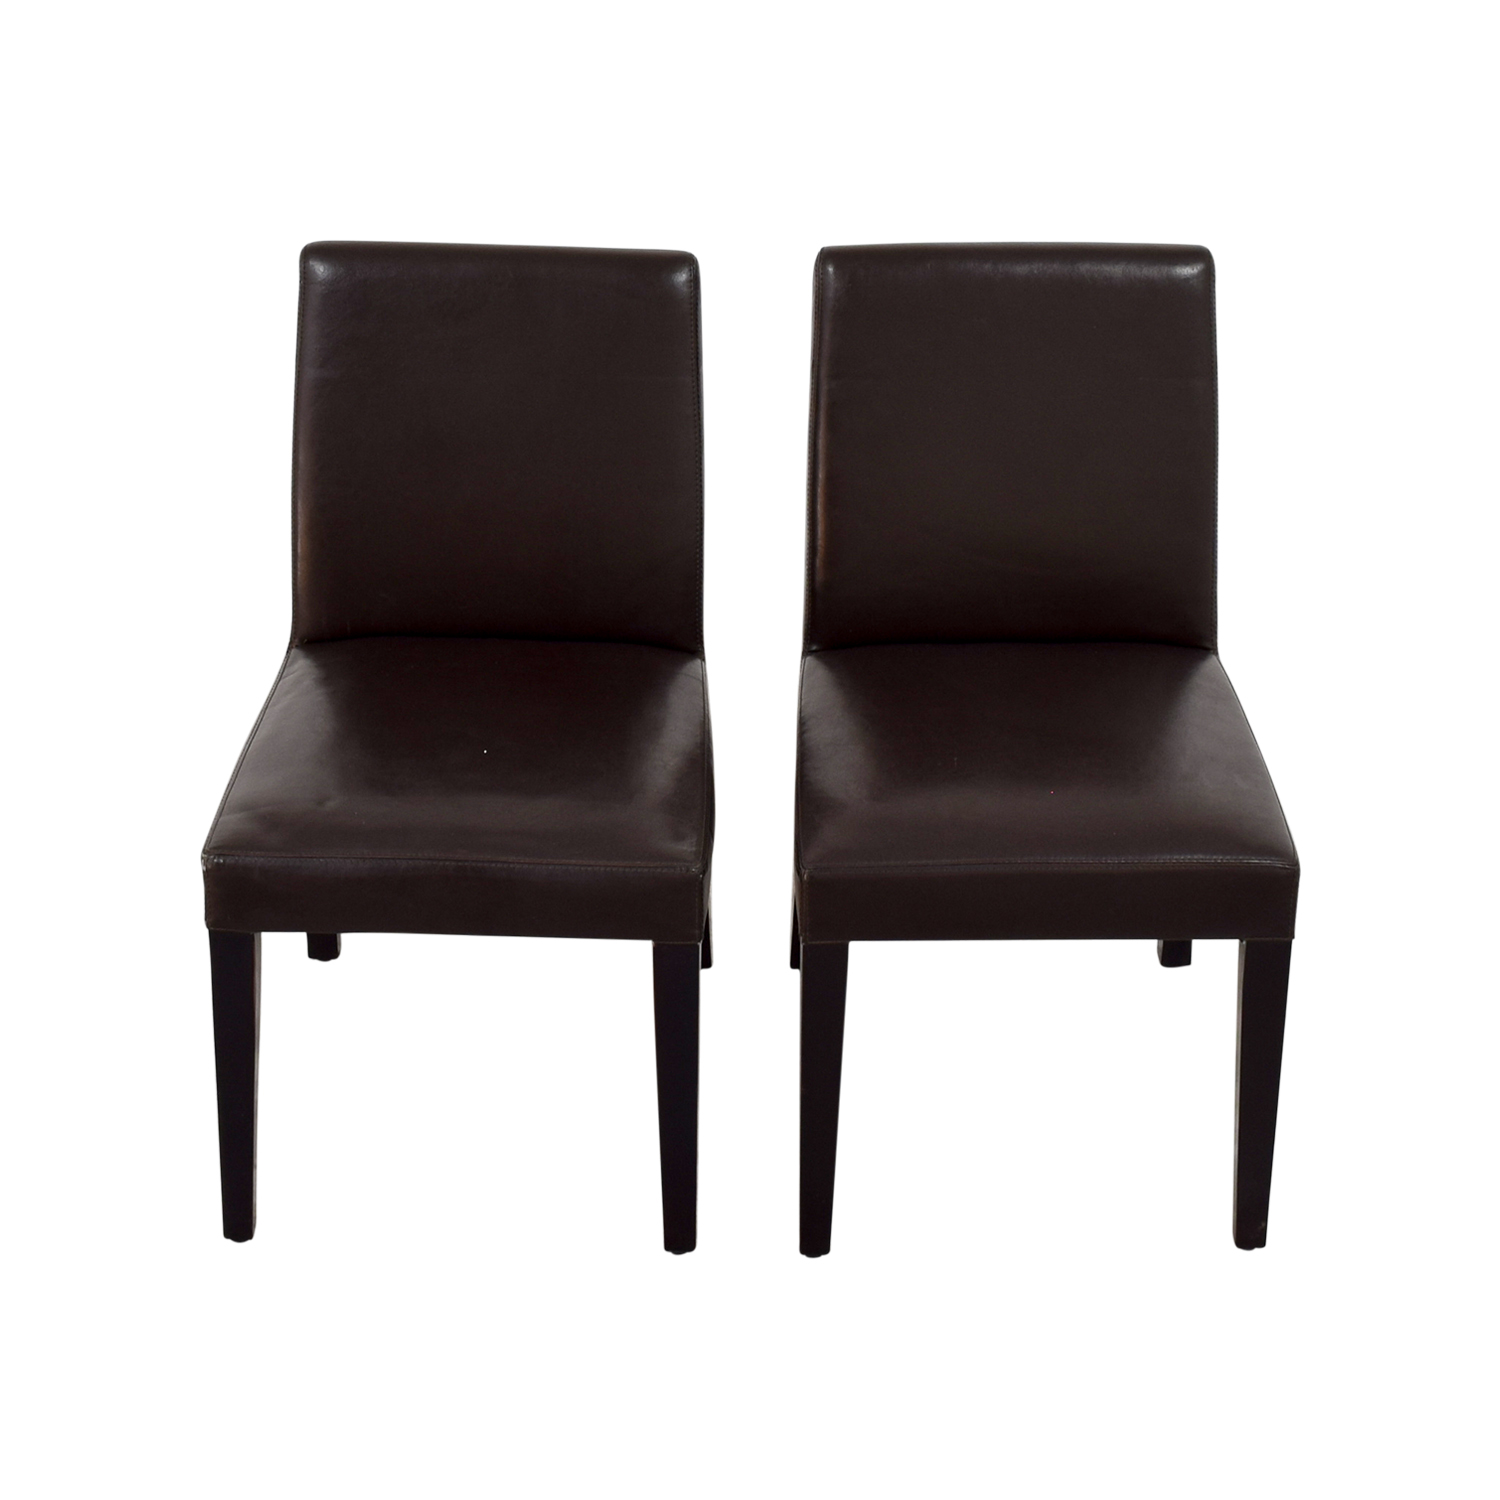 Crate And Barrel Dining Chairs: Crate And Barrel Crate & Barrel Brown Leather